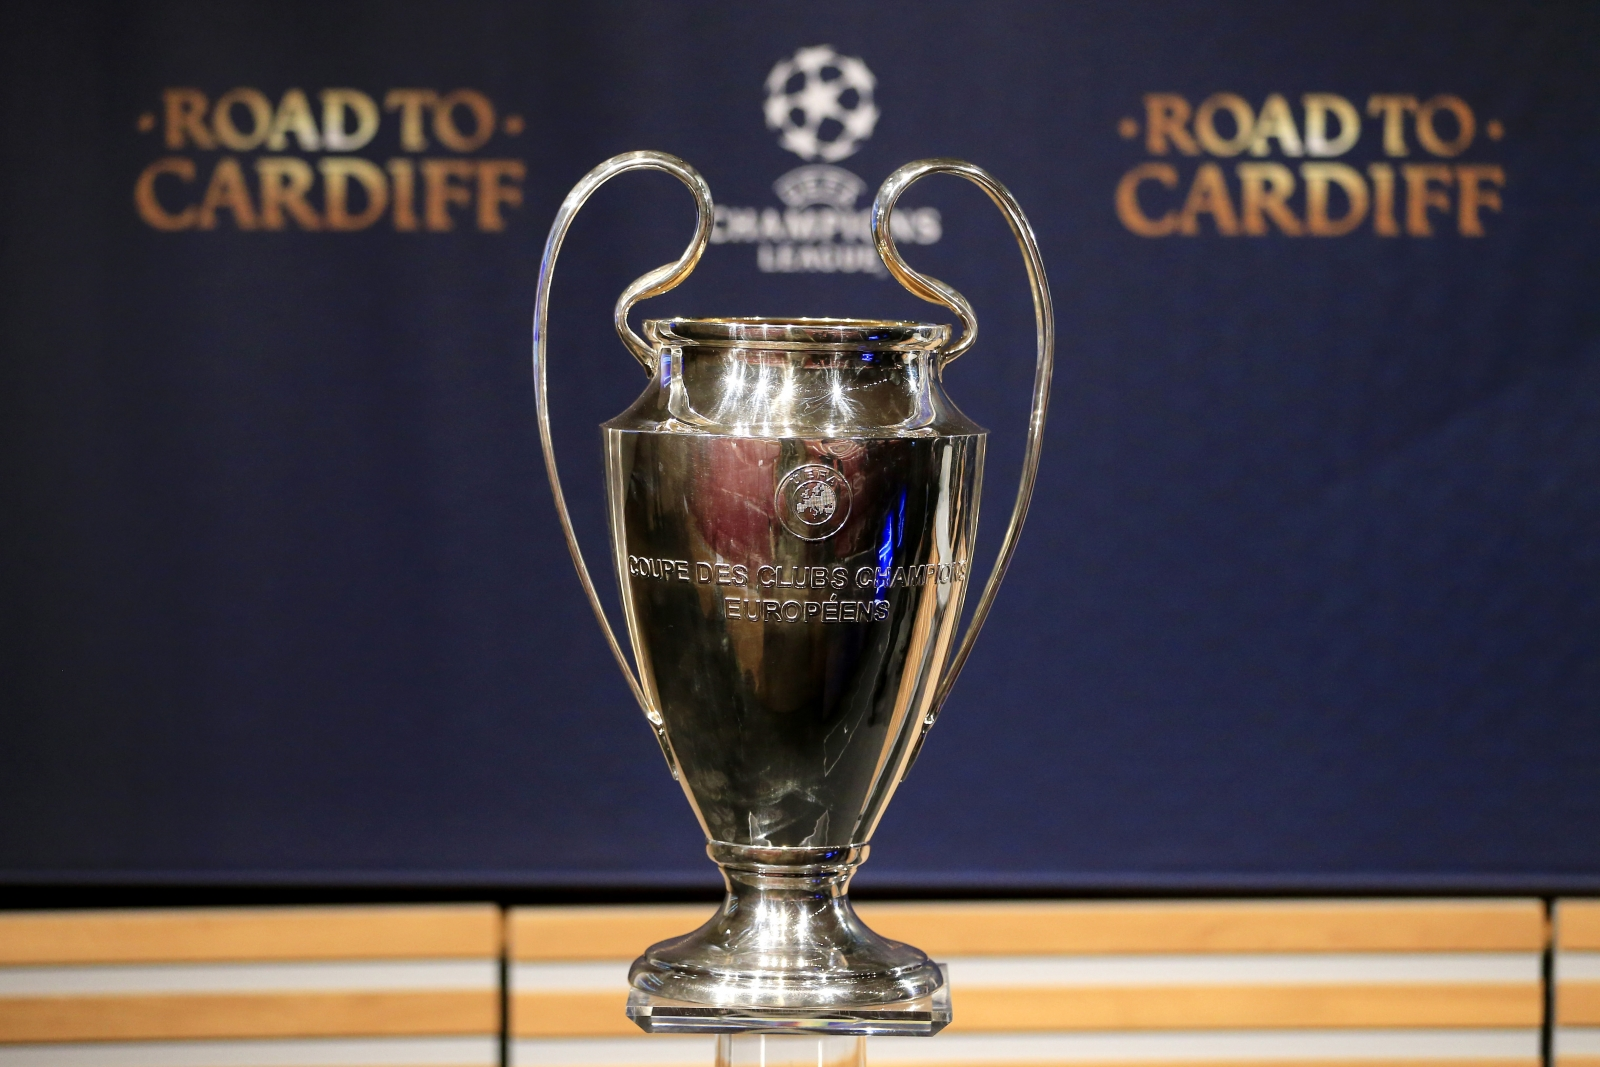 Champions League: UEFA Champions League Play-off Round Draw